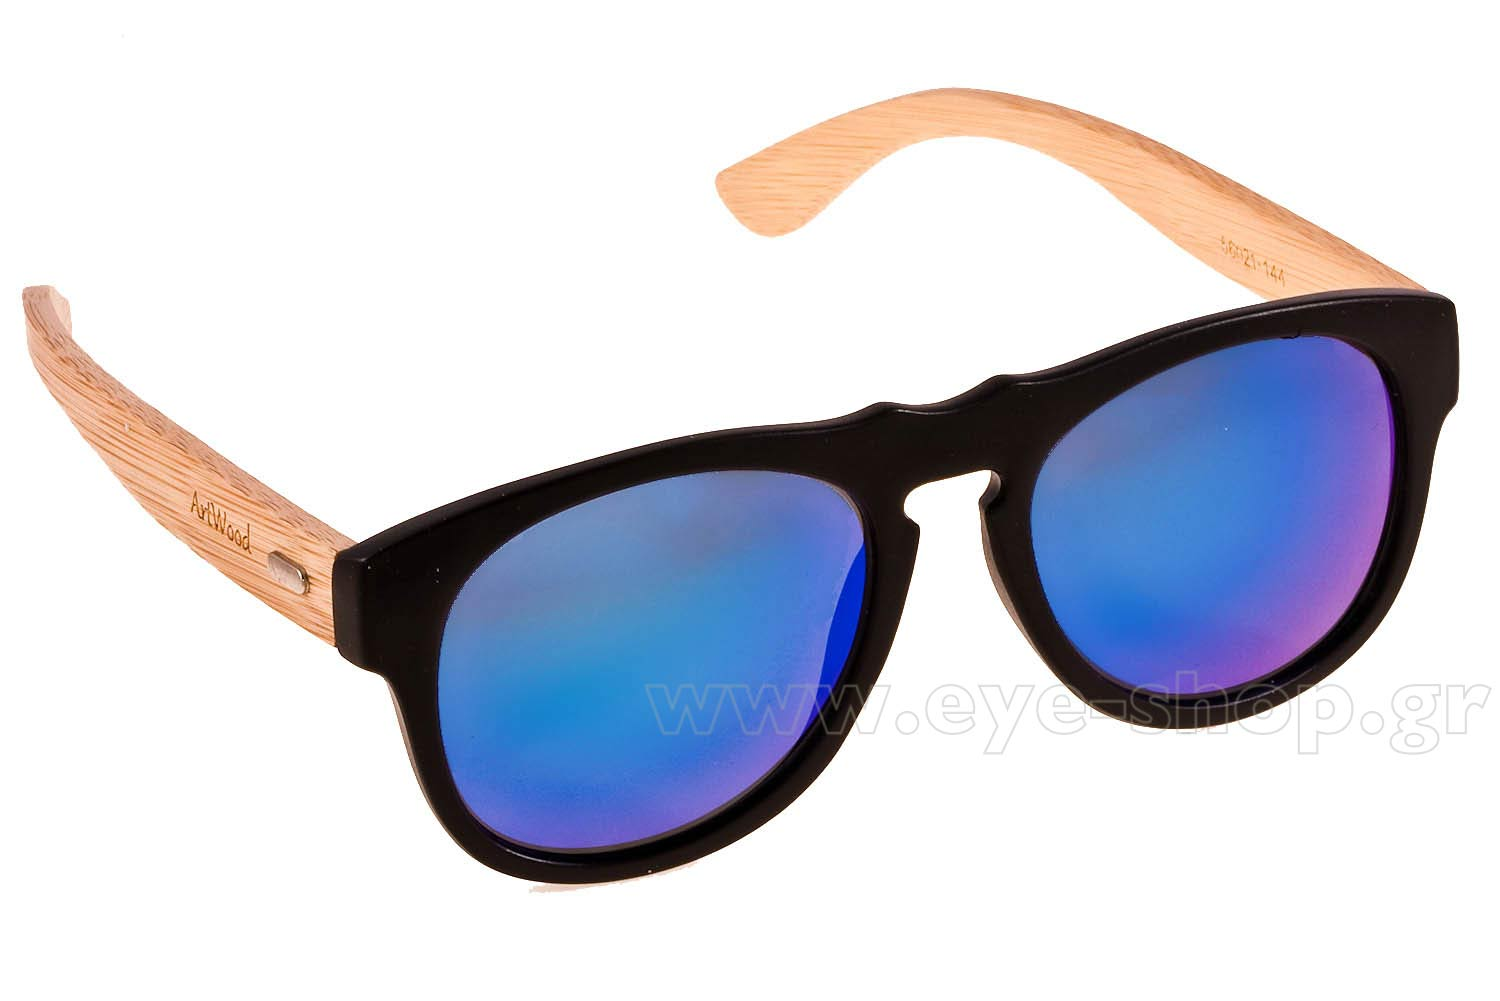 Γυαλιά Artwood Milano Steve 60 MtBlack BlueMirror Polarized Cat3